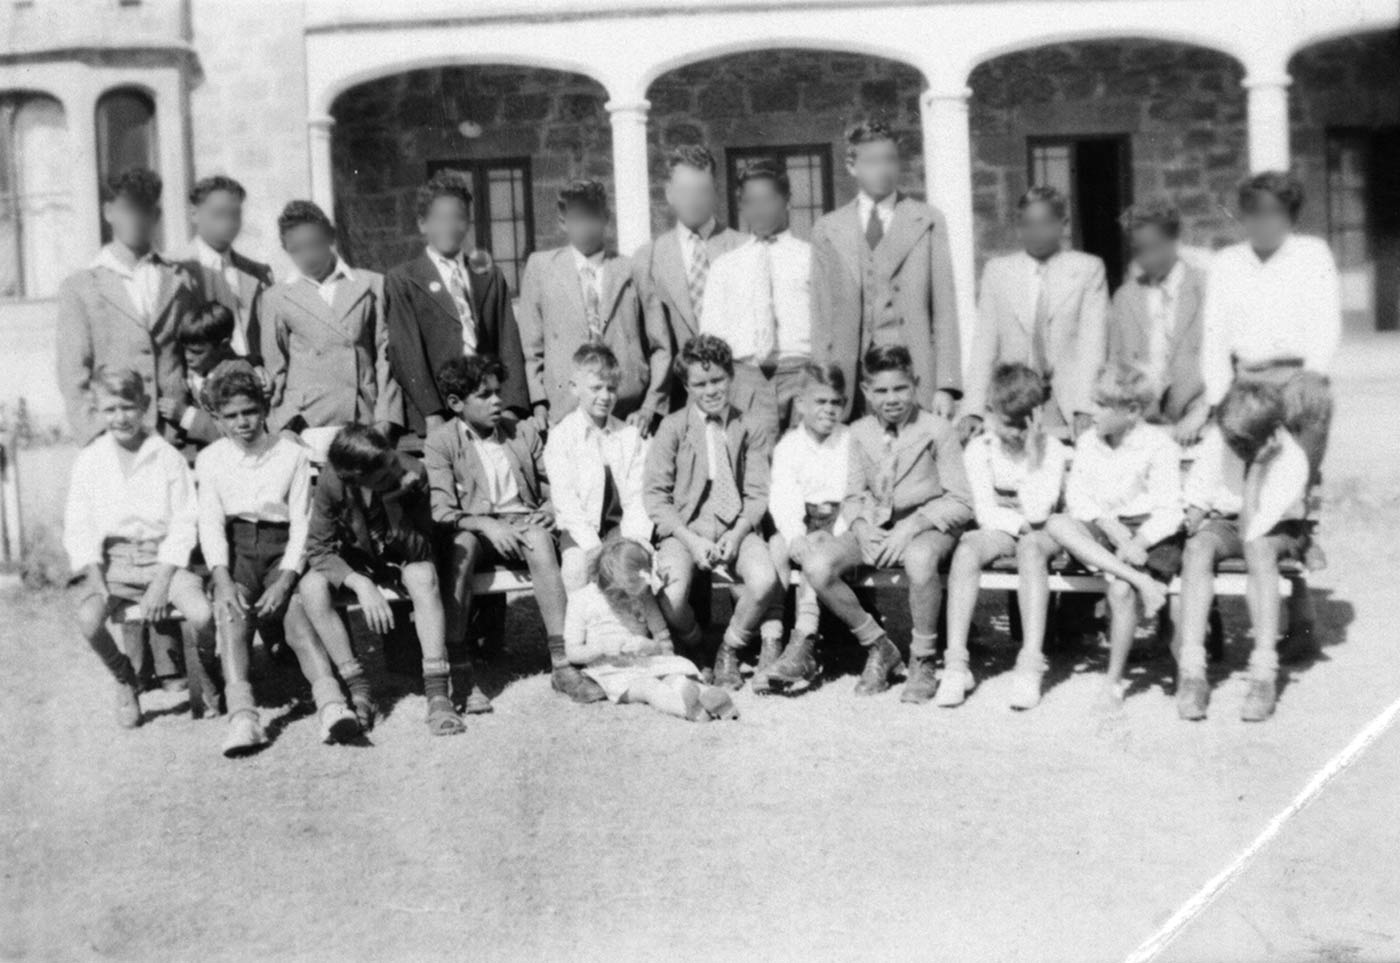 Black and white image showing two rows of boys, one sitting and one standing. Some of the boys' faces have been blurred. - click to view larger image